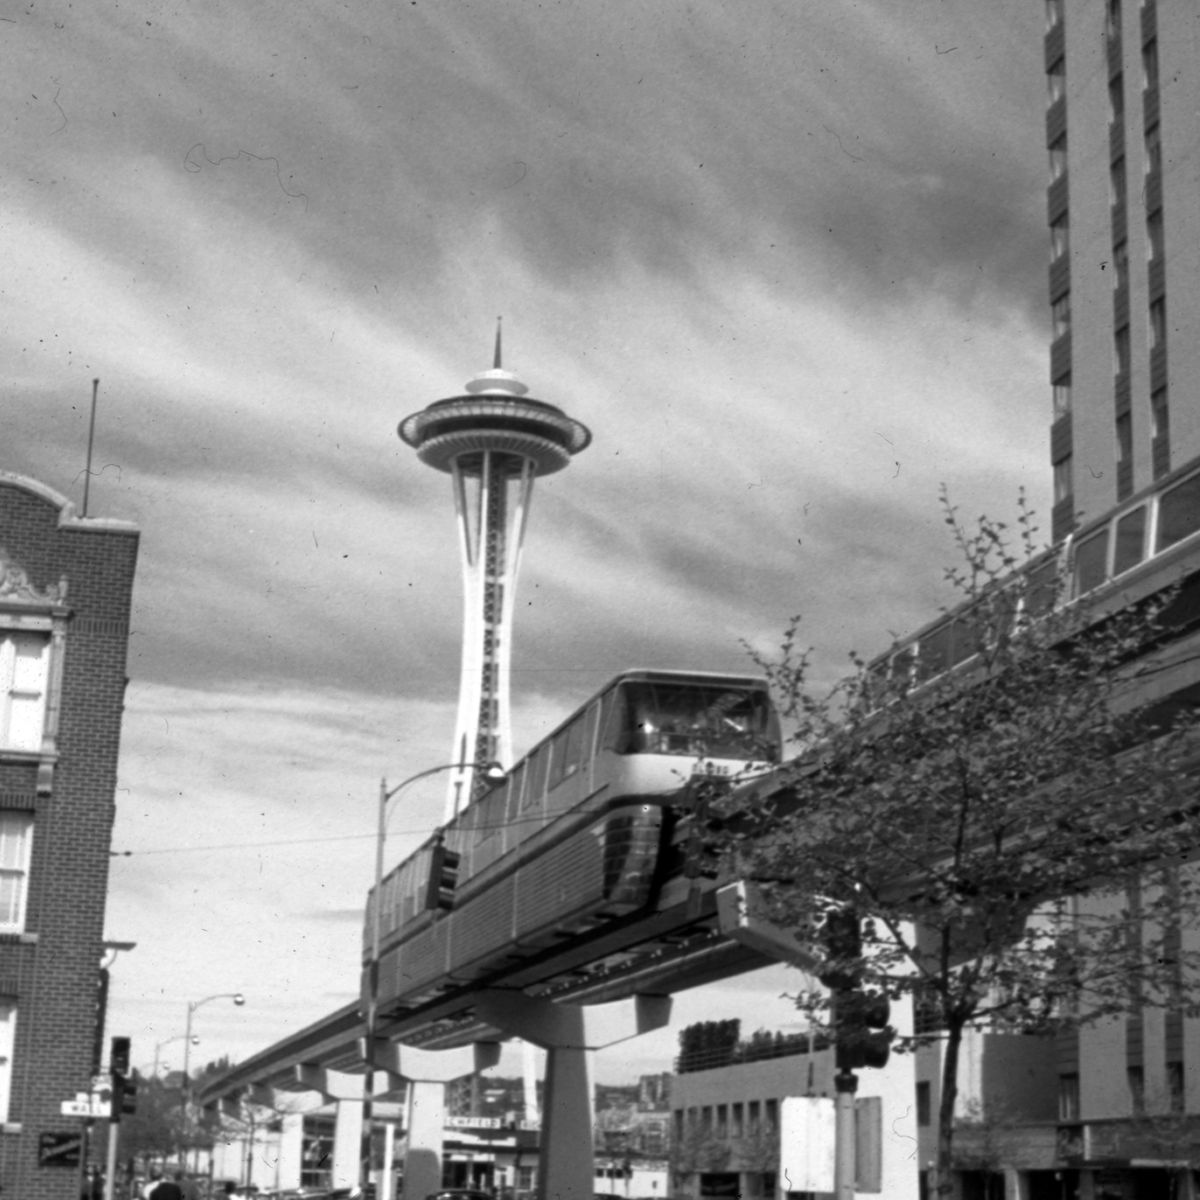 The monorail is pictured with, of course, the Space Needle.